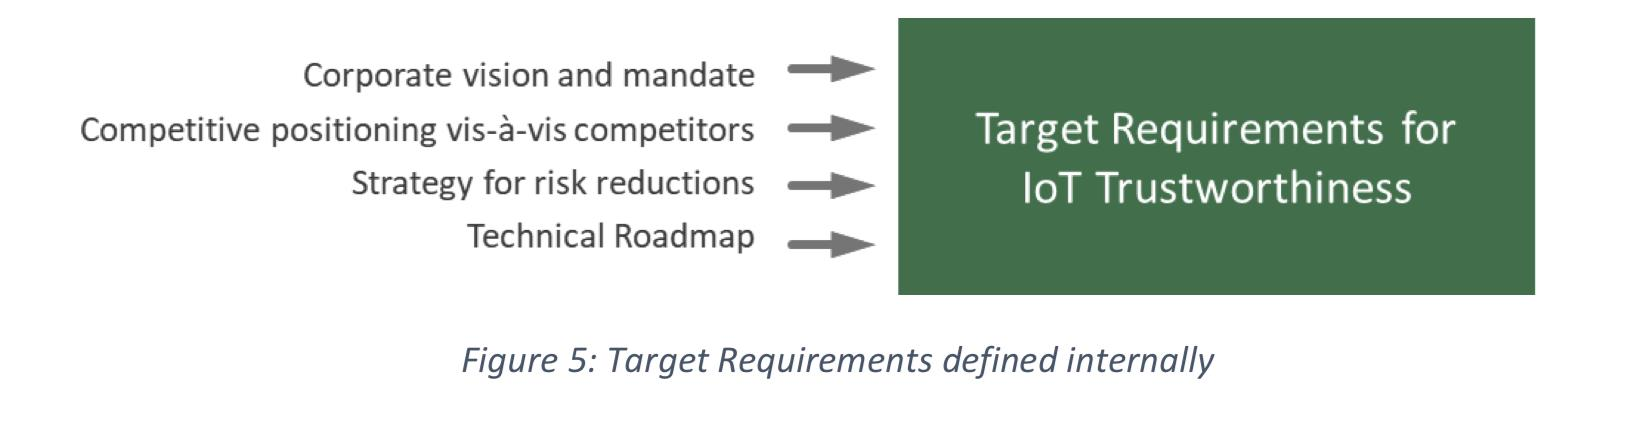 Target Requirements defined internally